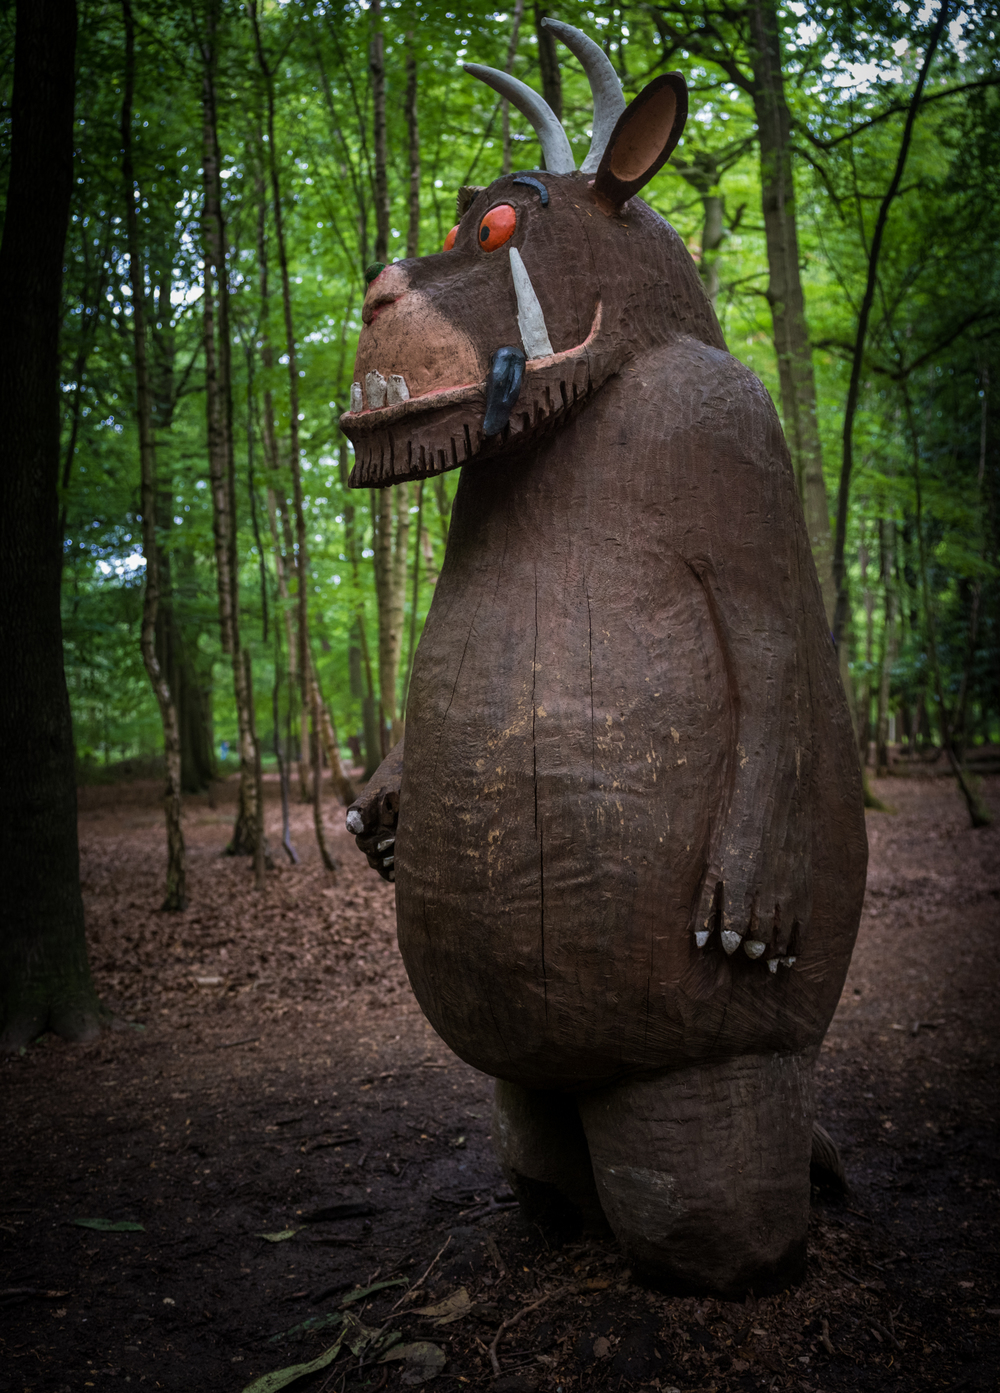 A Gruffalo, down in the deep dark woods (in Essex)